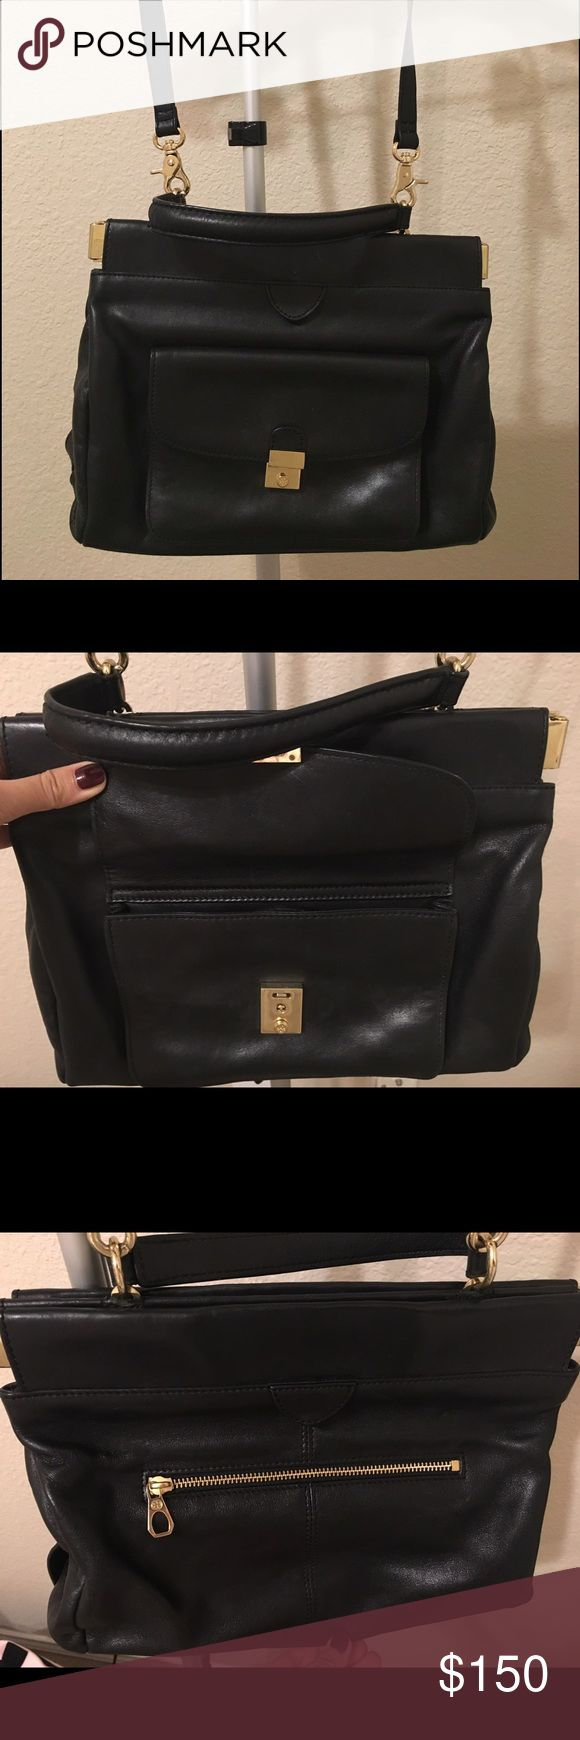 Tory Burch Priscilla Small Frame Satchel - BLACK; Size: OS  Original Price: $416.5                                                        Bought it in 2012. It was in bag for 3 years. Used. I will clean this bag before I delivery it to the customer. There is a little bit dust on the surface of the leather. Tory Burch Bags Satchels